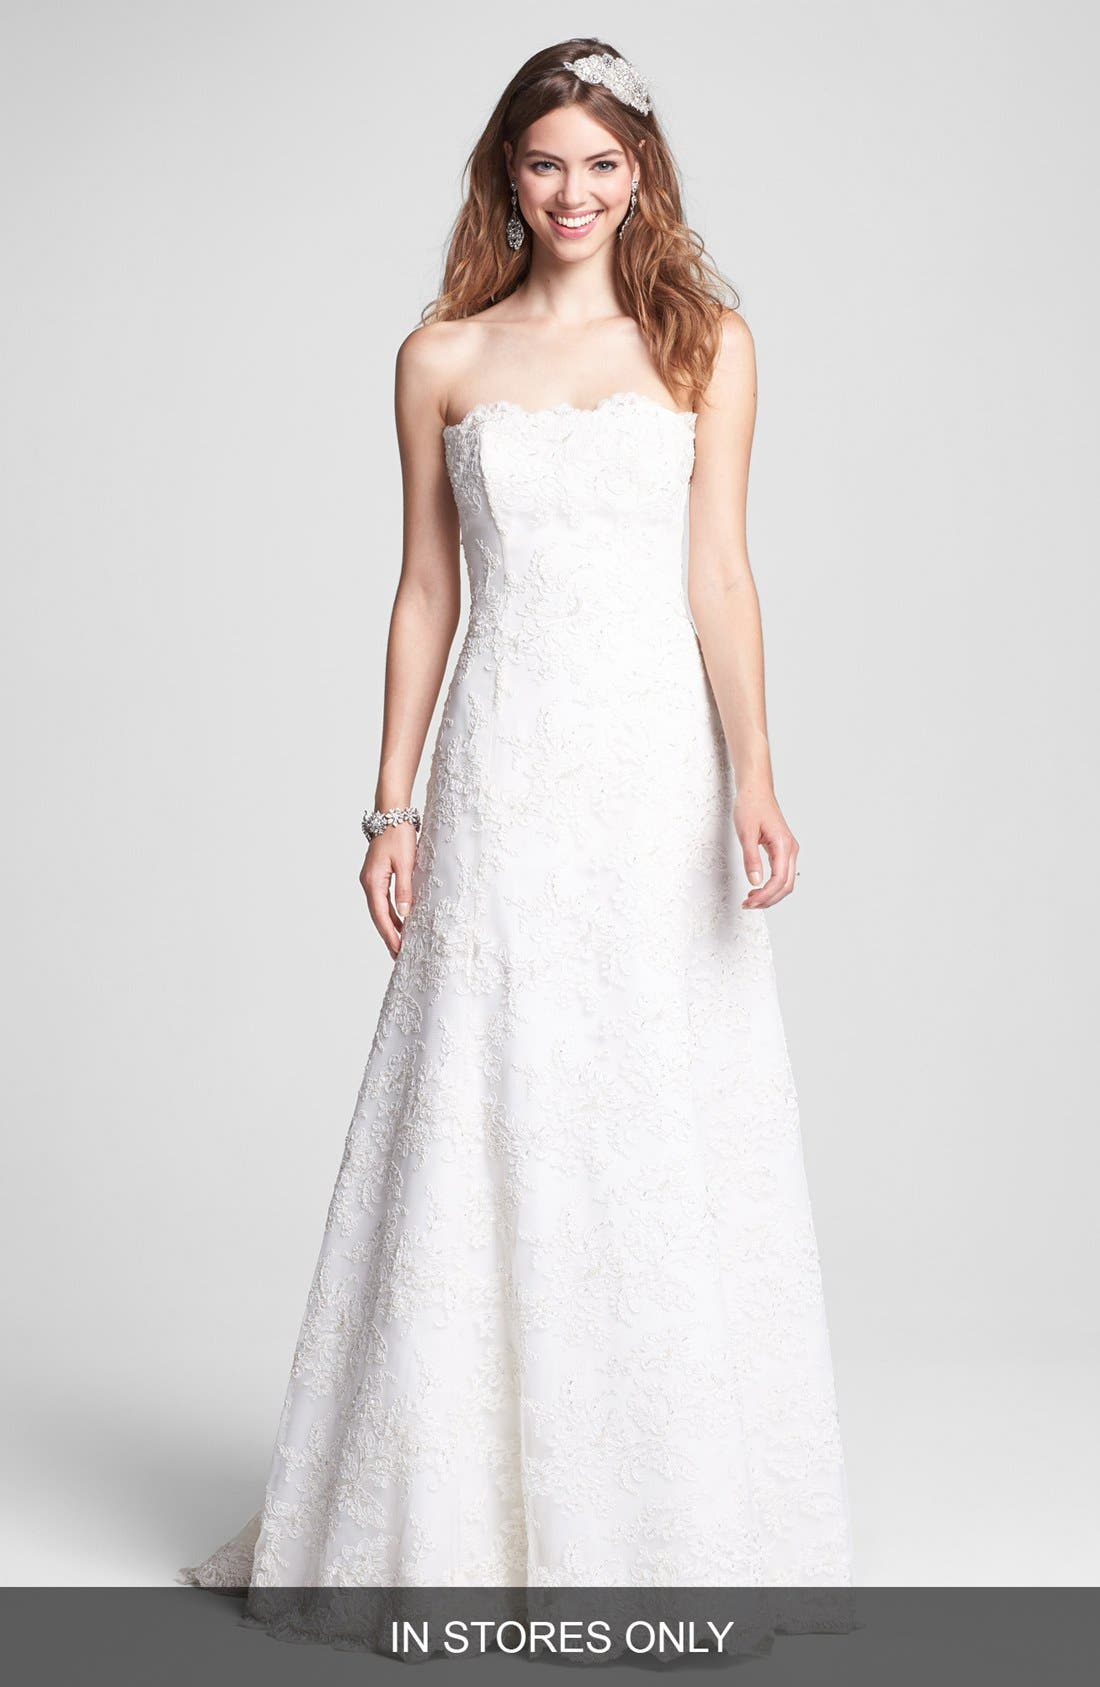 BLISS Monique Lhuillier Strapless Beaded Lace Wedding Dress (In Stores Only)